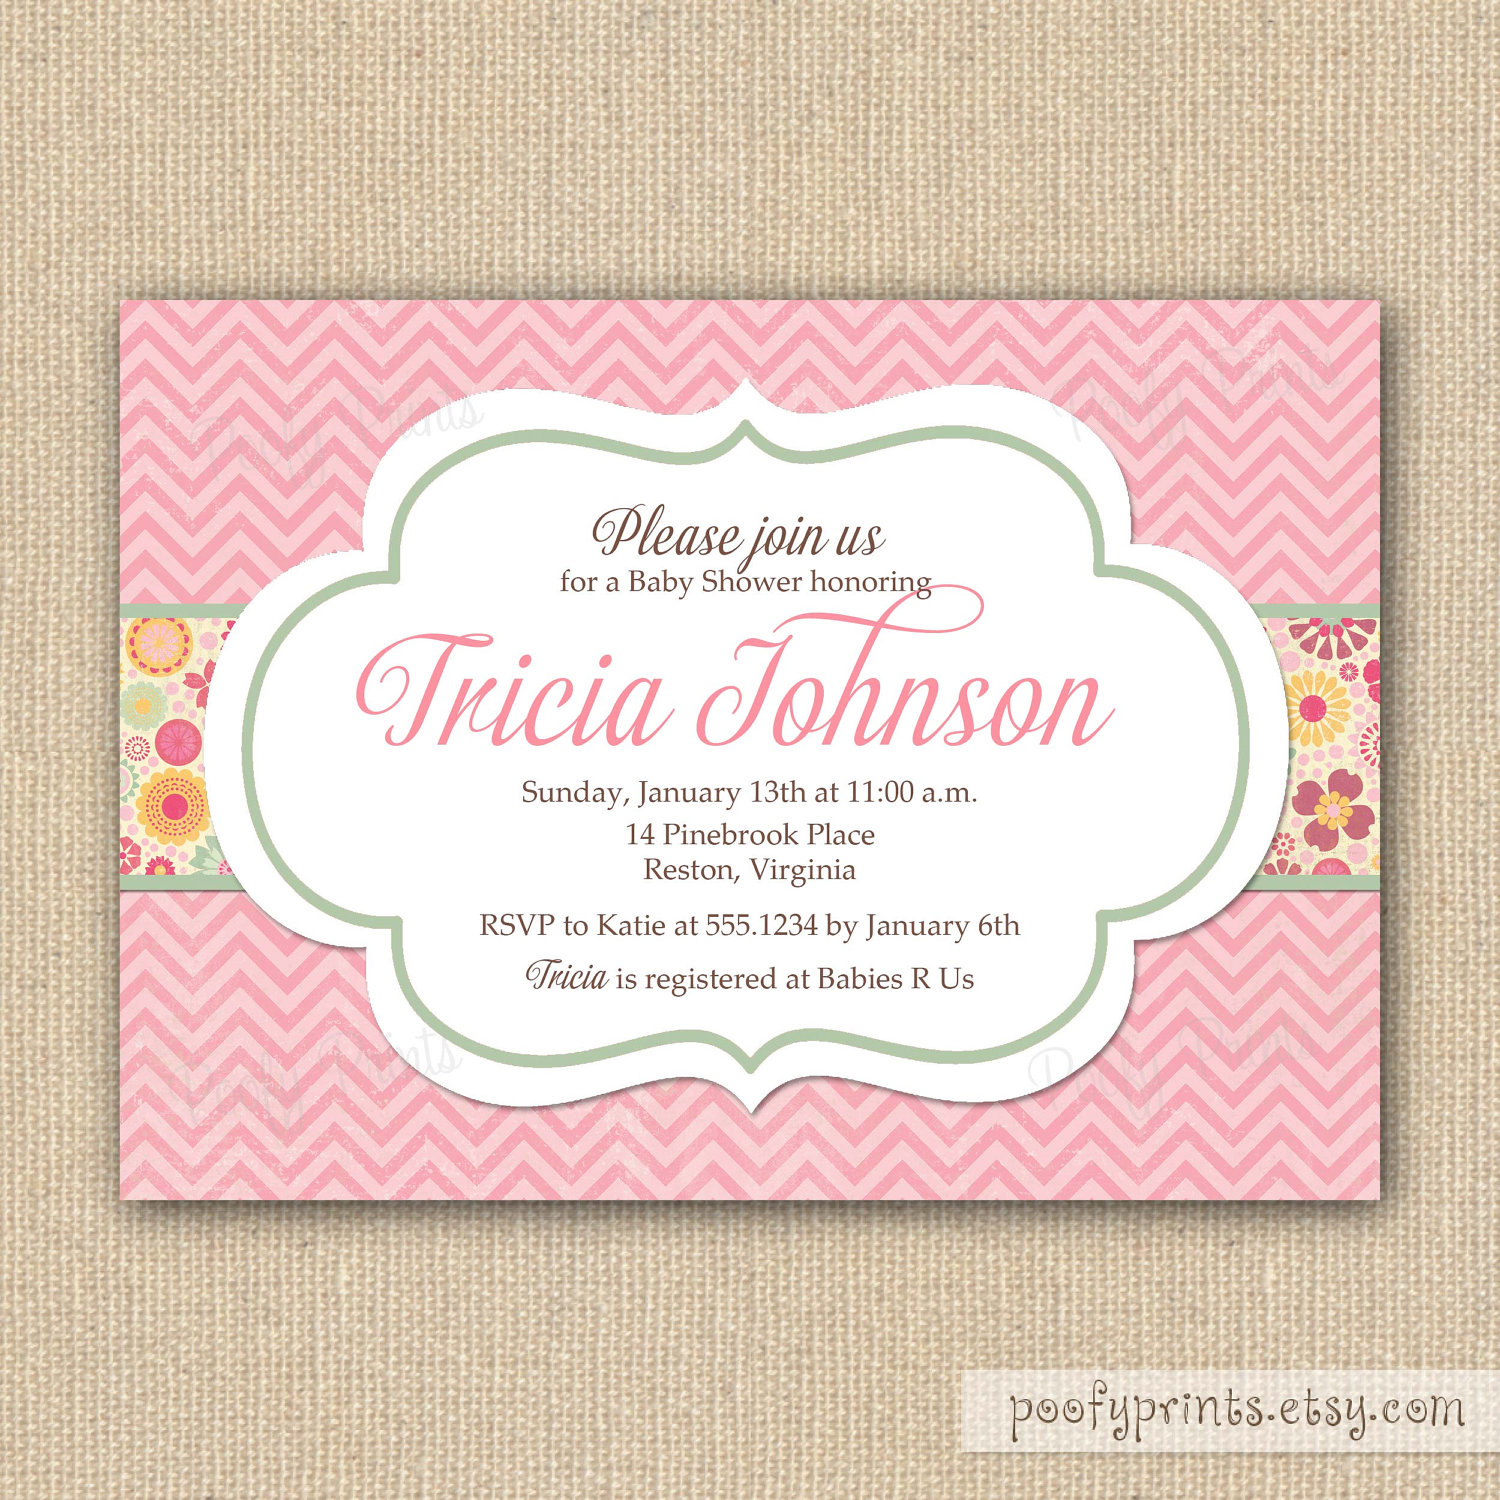 Printed Invitation Template